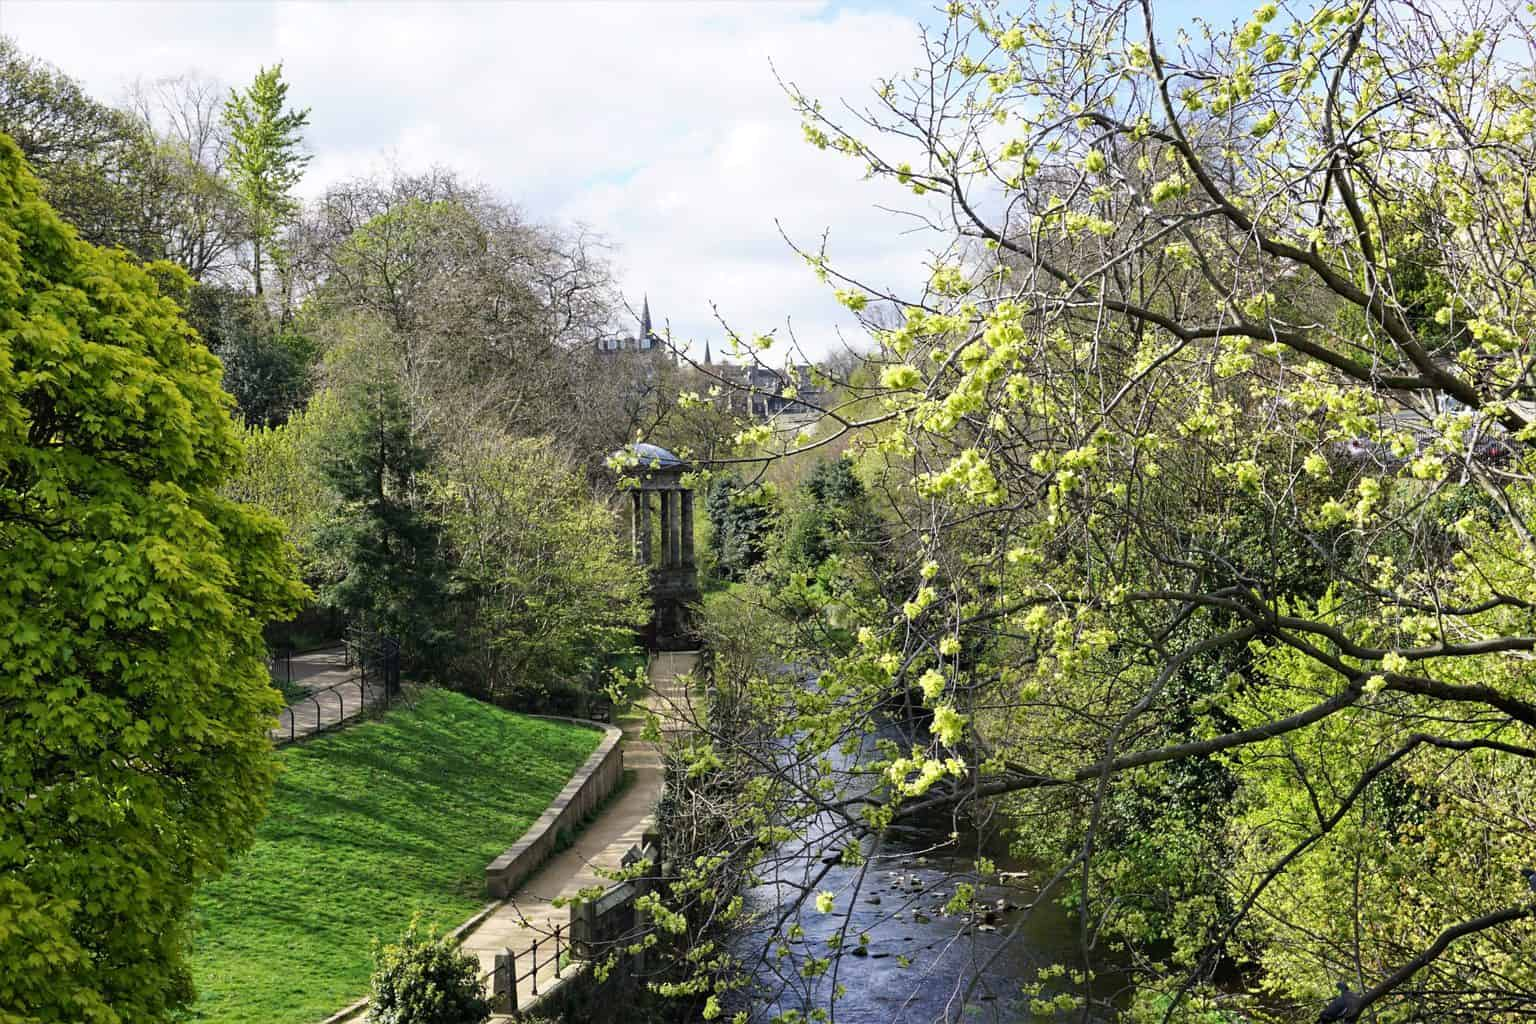 An aerial view of the Water of Leith Walkway in Stockbridge.